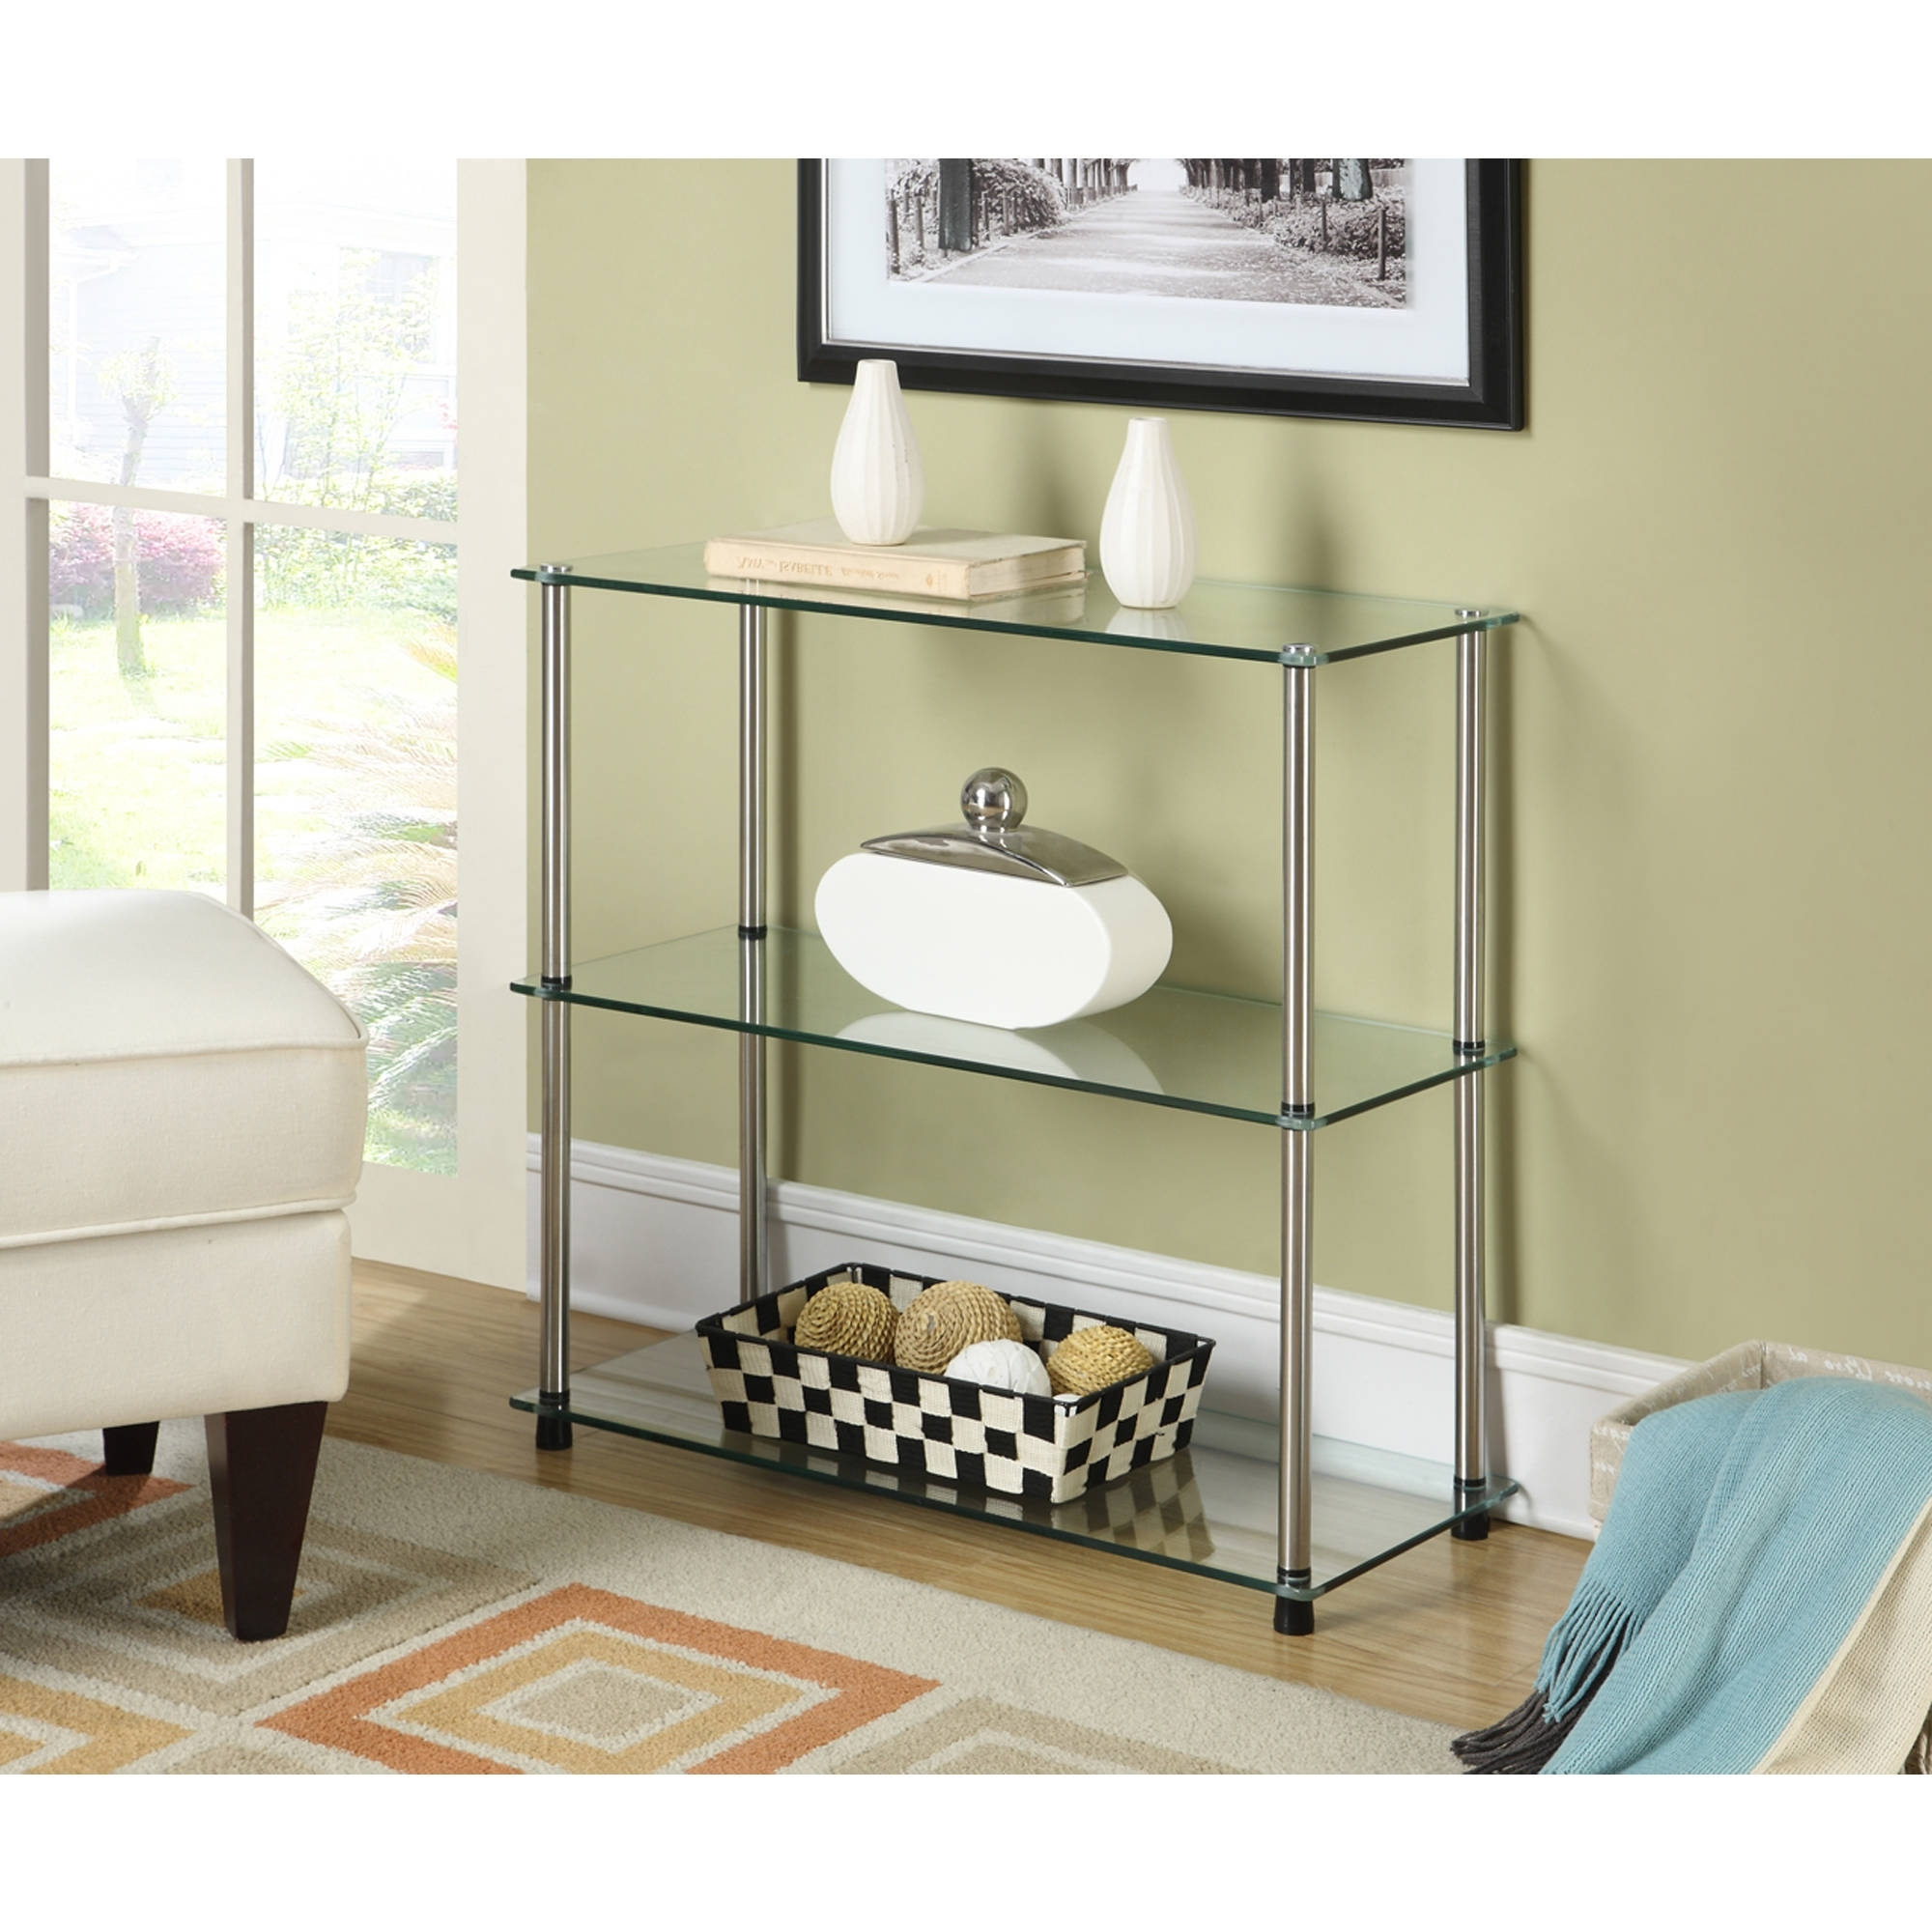 Newest Shelf Bookcase With Glass Doors Sauder White Room Essentials With Regard To Room Essentials 3 Shelf Bookcases (View 8 of 15)